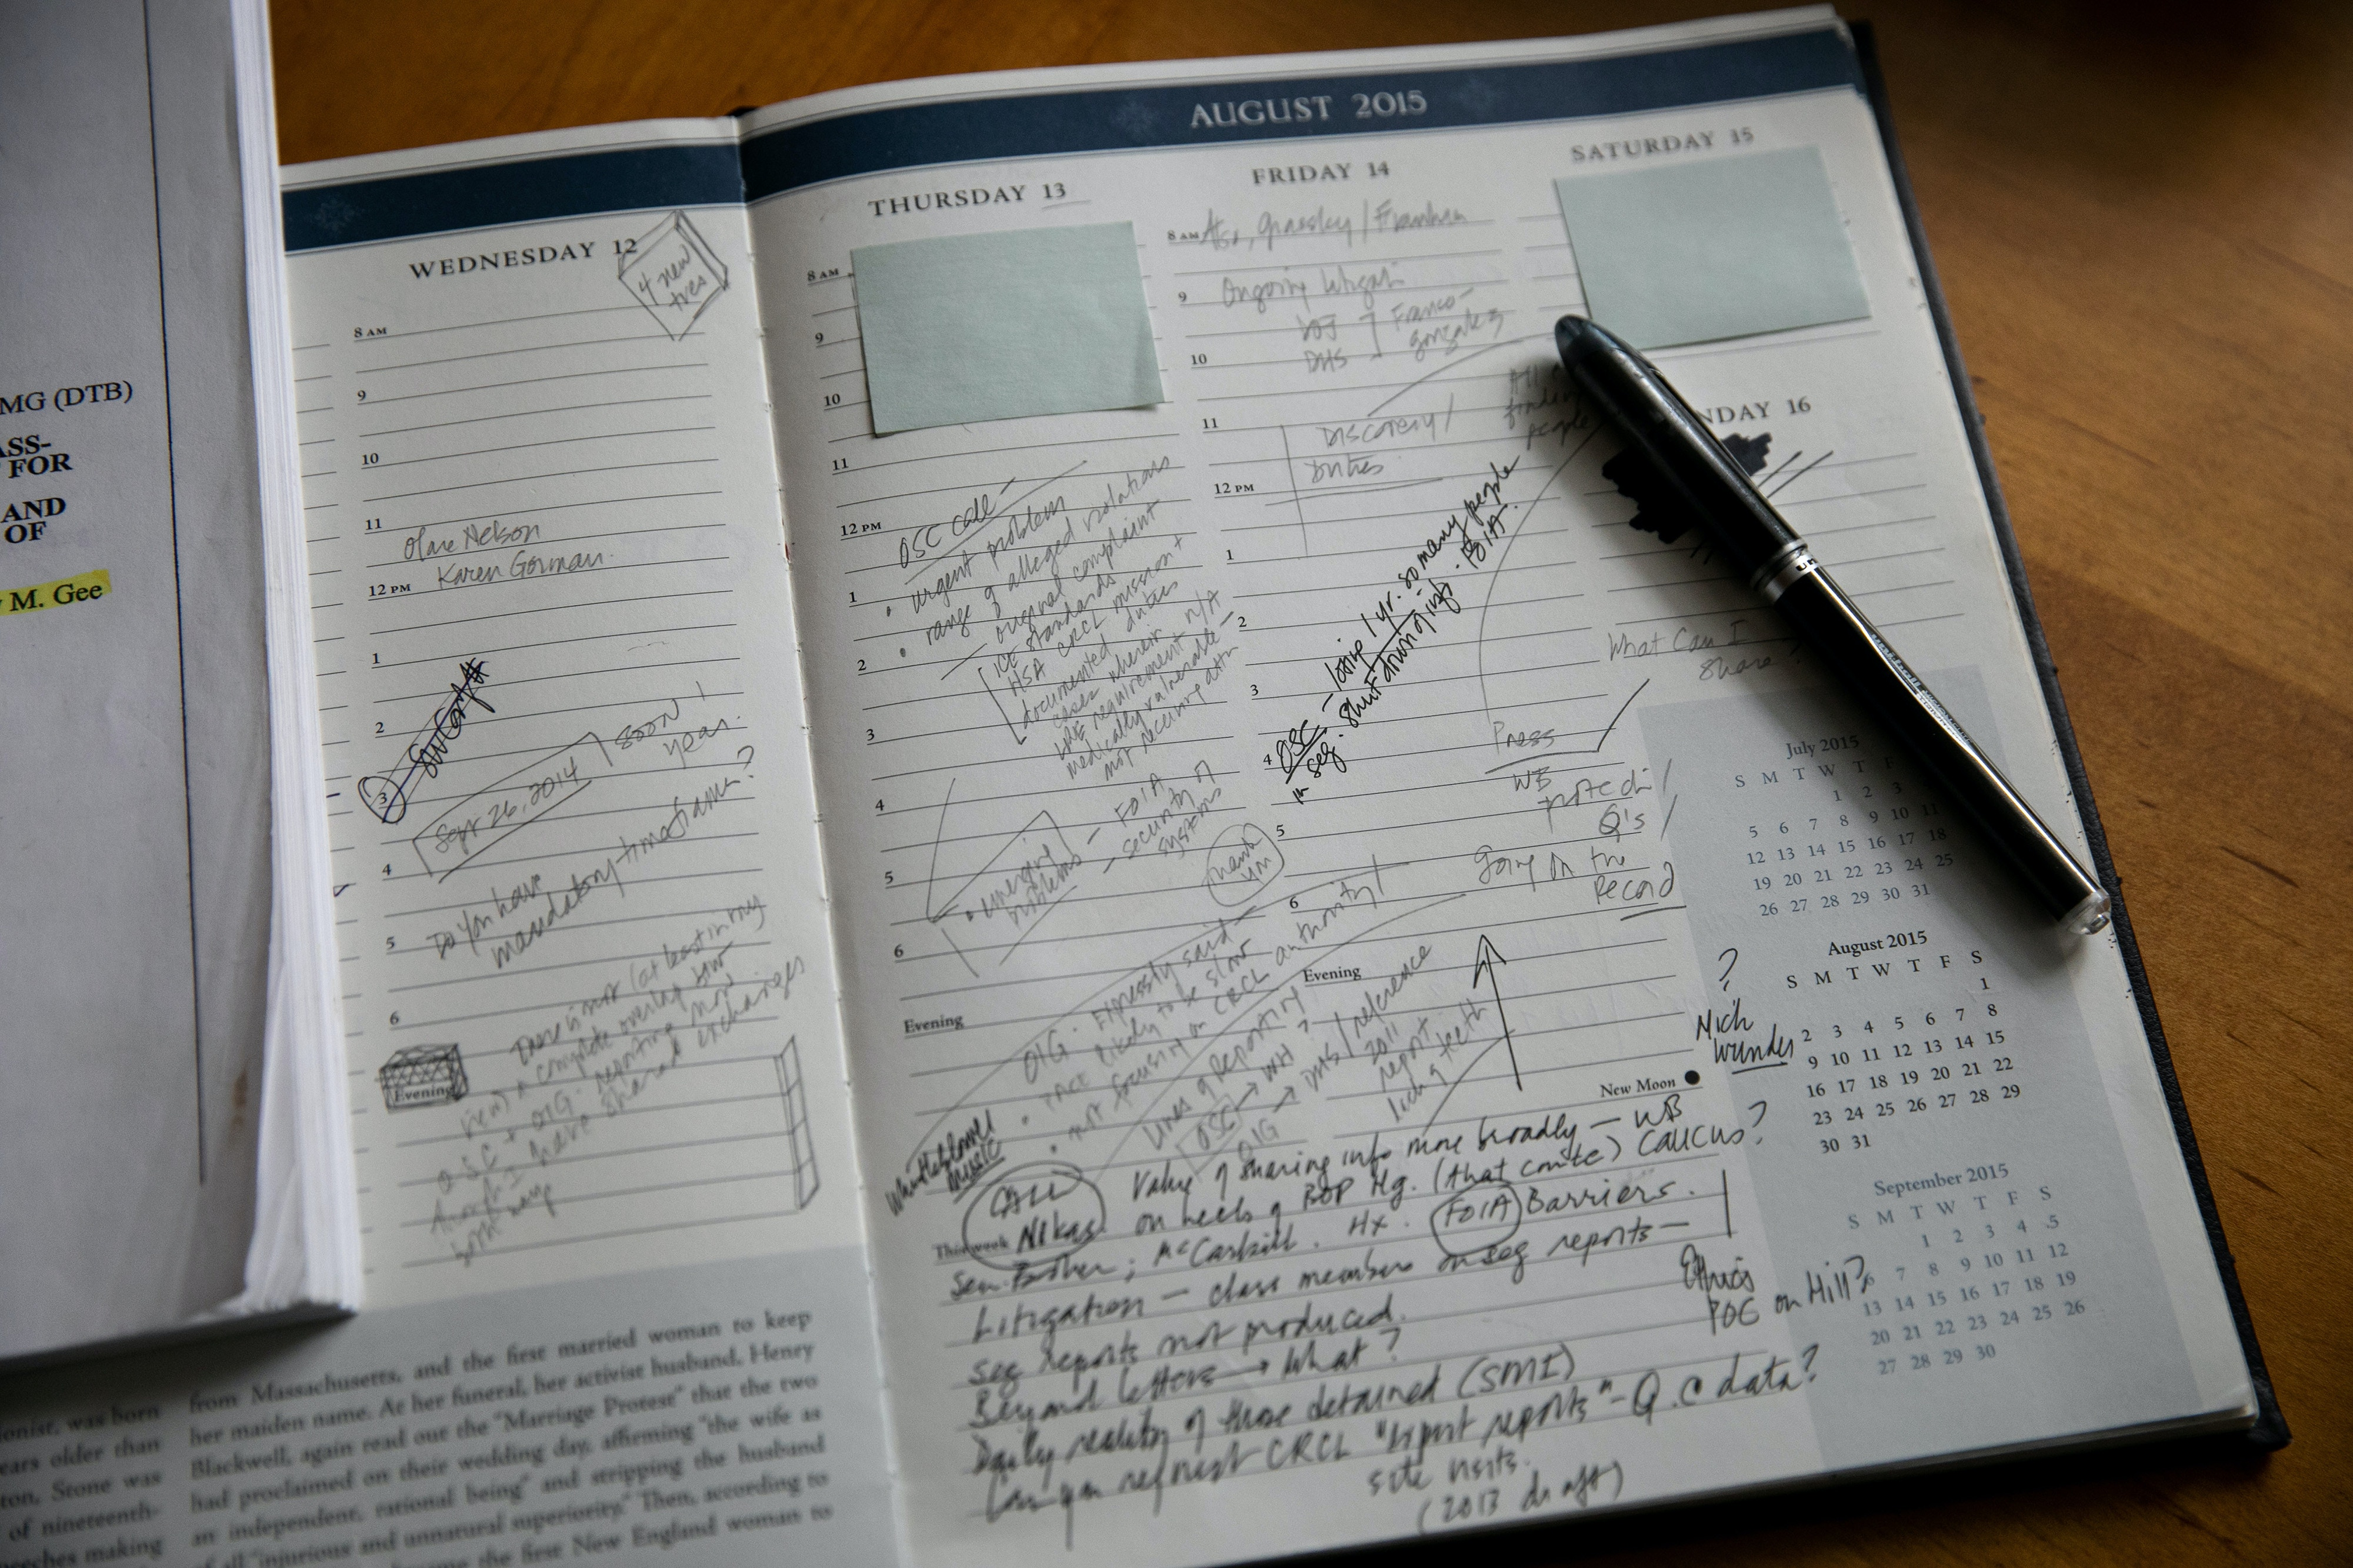 Mansfield, MA -- 05/09/2019 -- Ellen Gallagher's journal from August, 2015 is seen in her home office on May 9, 2019, in Mansfield, Massachusetts. This page has notes reflecting her communication with OSC, notes about her outreach to members of Congress, notes about the Franco Gonzalez litigation, and a range of issues related to whistleblowing. This page is a direct reflection of one the the key documents in the case, which is the first request for reconsideration to OSC. (Kayana Szymczak for The Intercept)